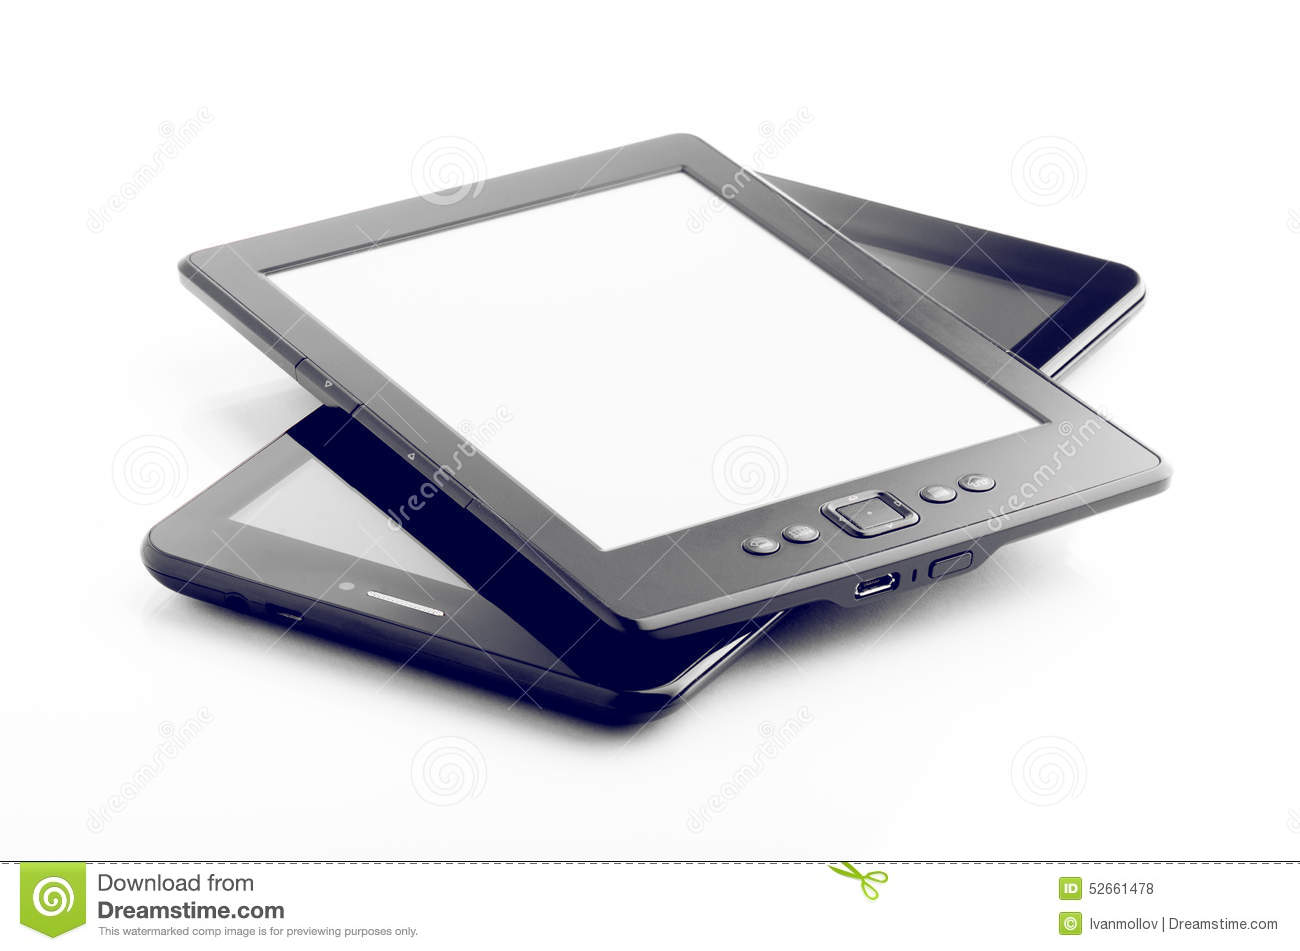 E-Buch-Leser And Tablet Isolated auf Weiß